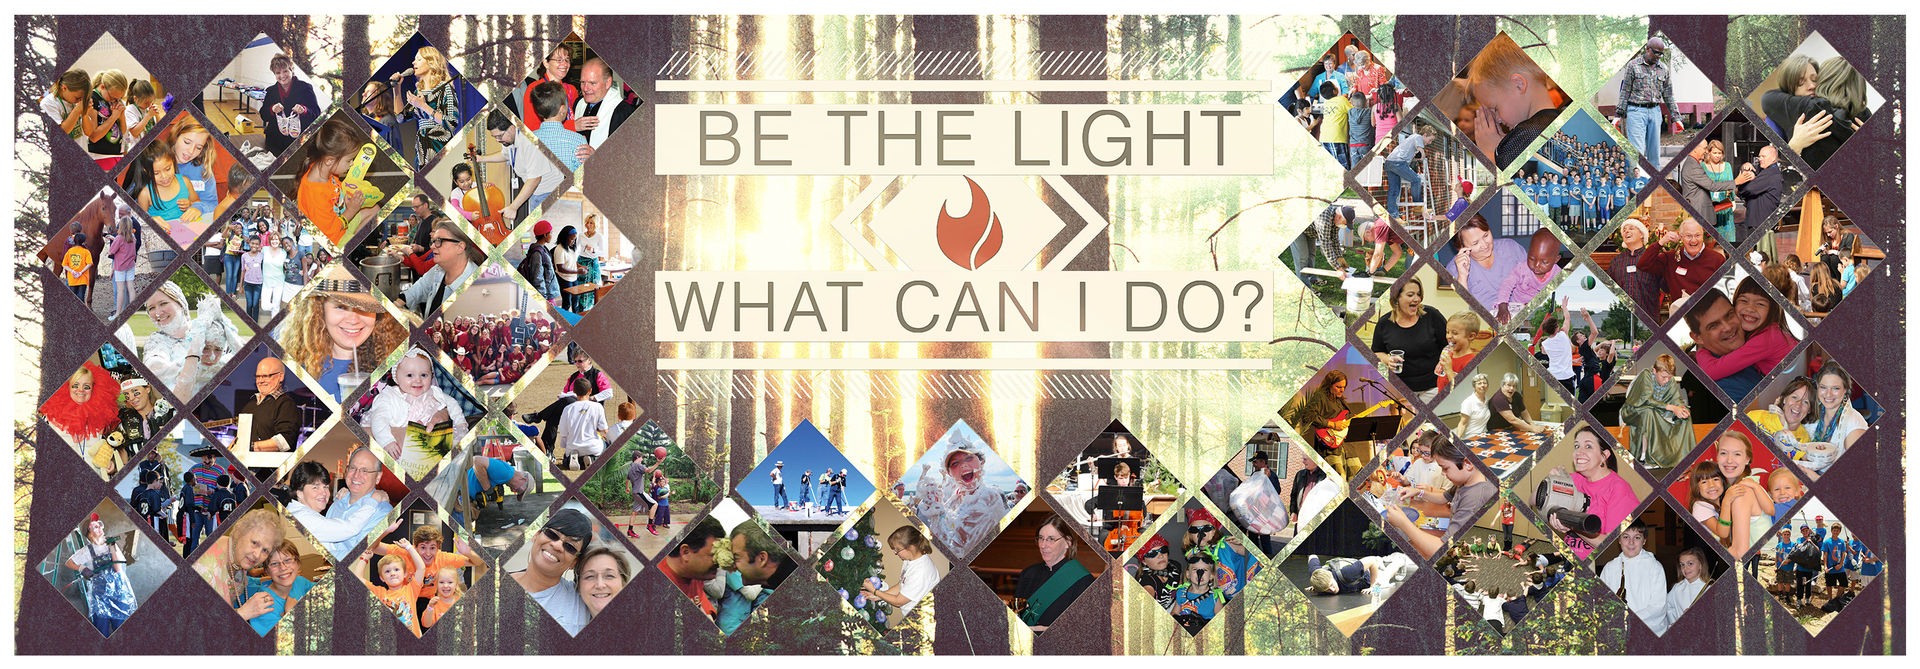 Be the Light Hallway Banner